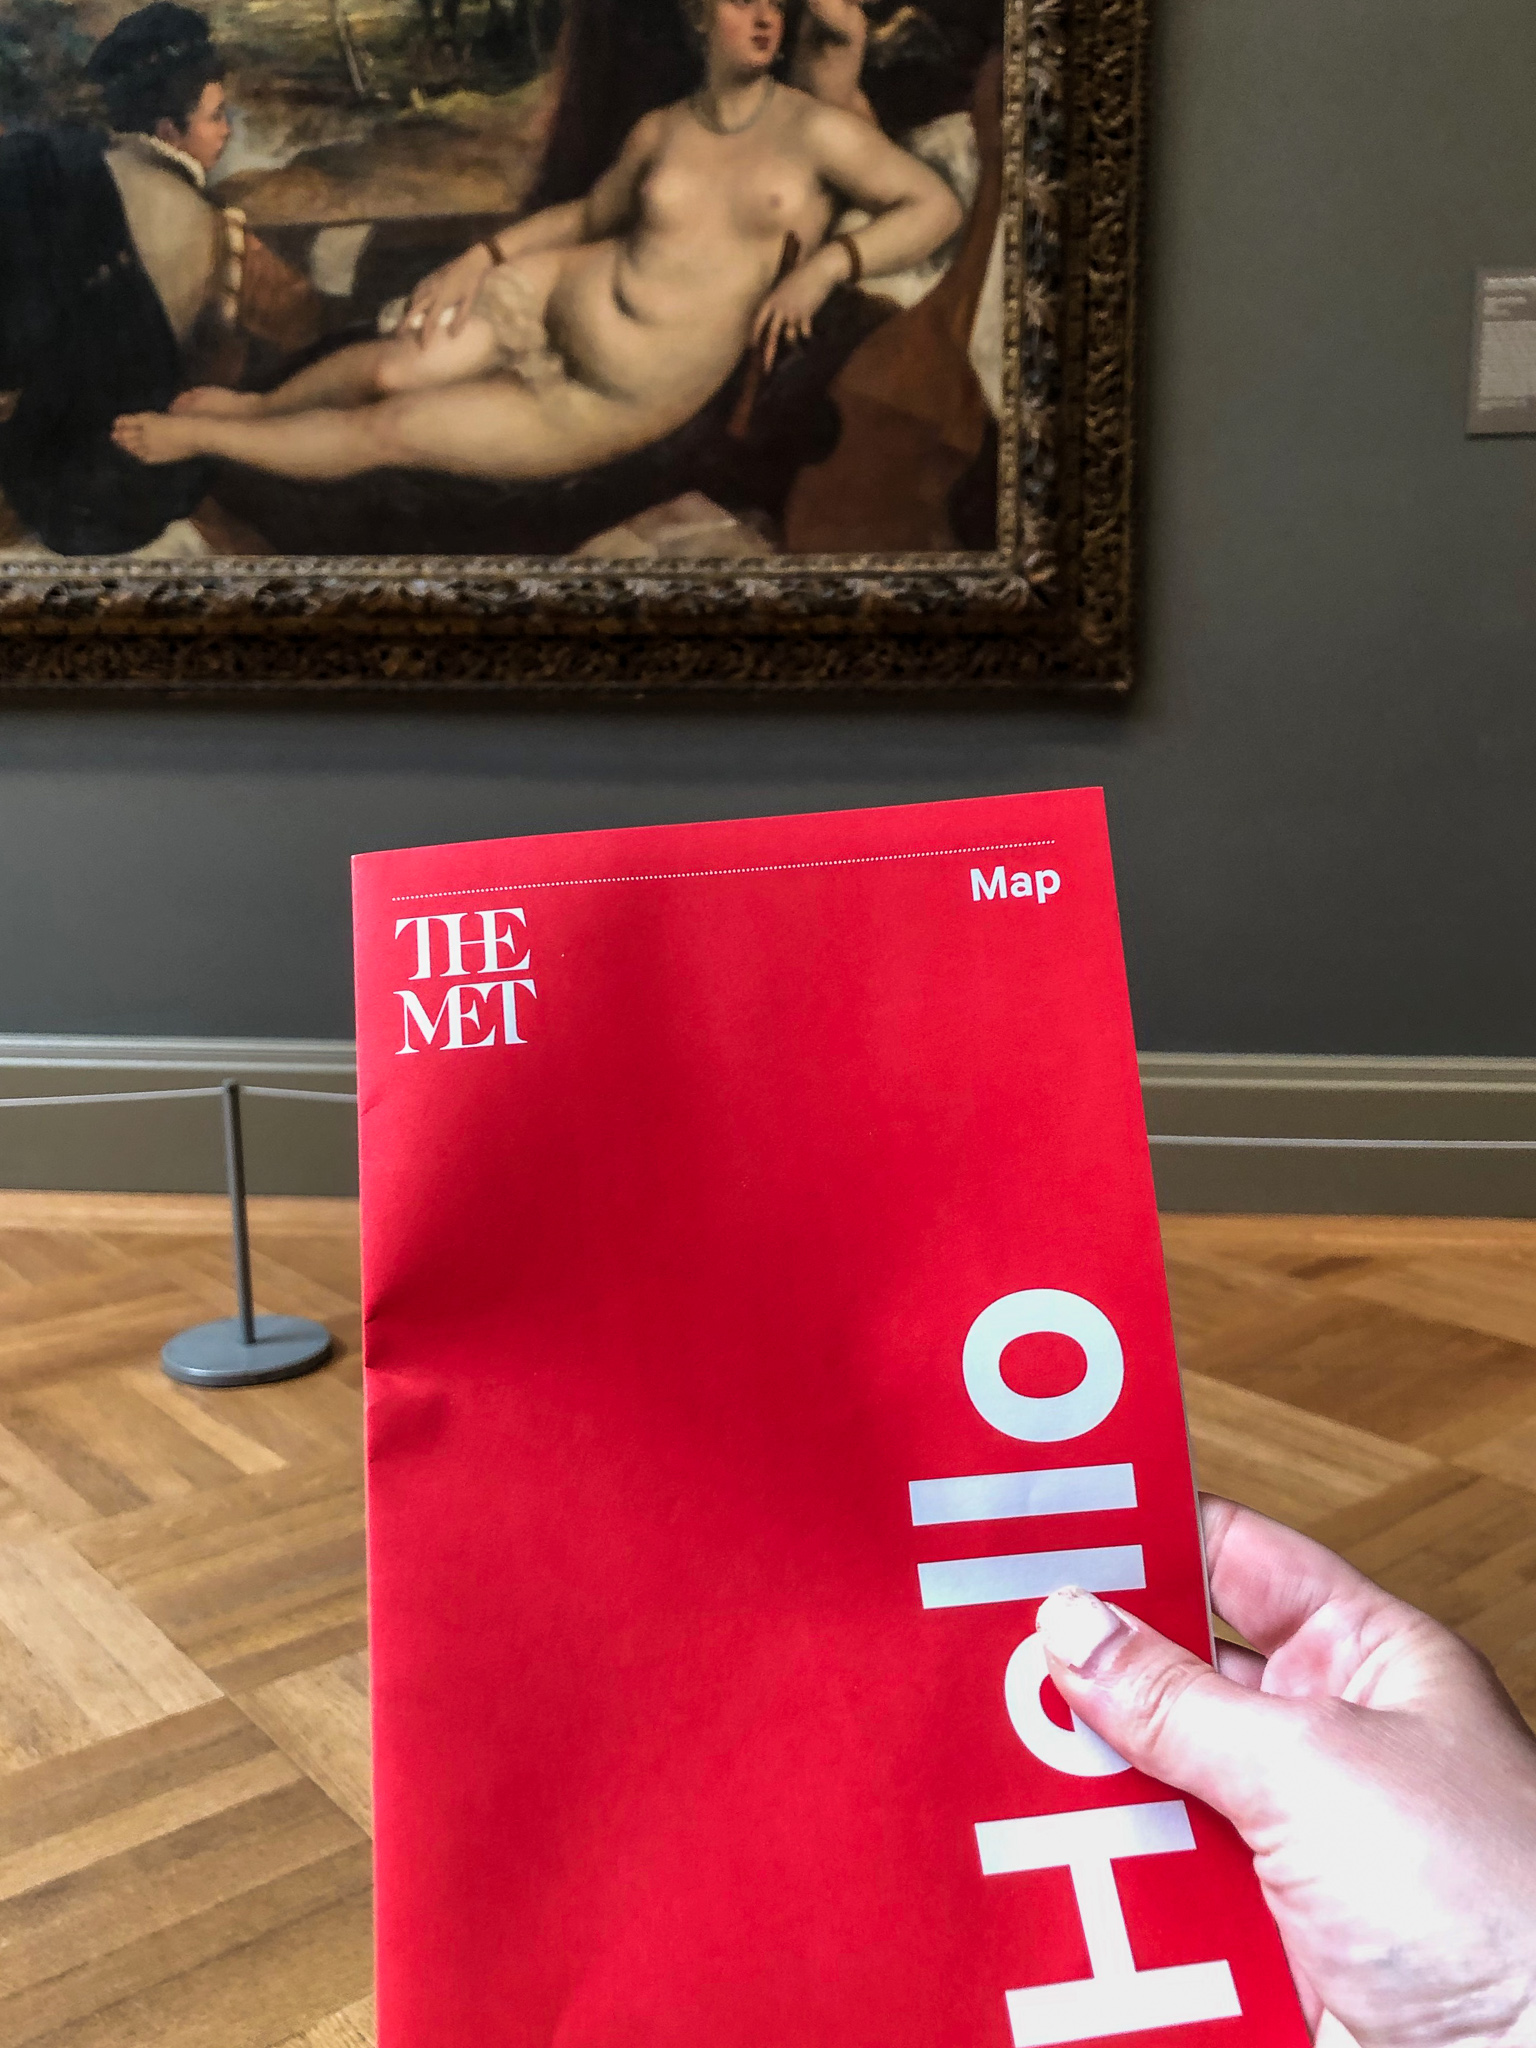 Tips for visiting the metropolitan museum of art: keep your map